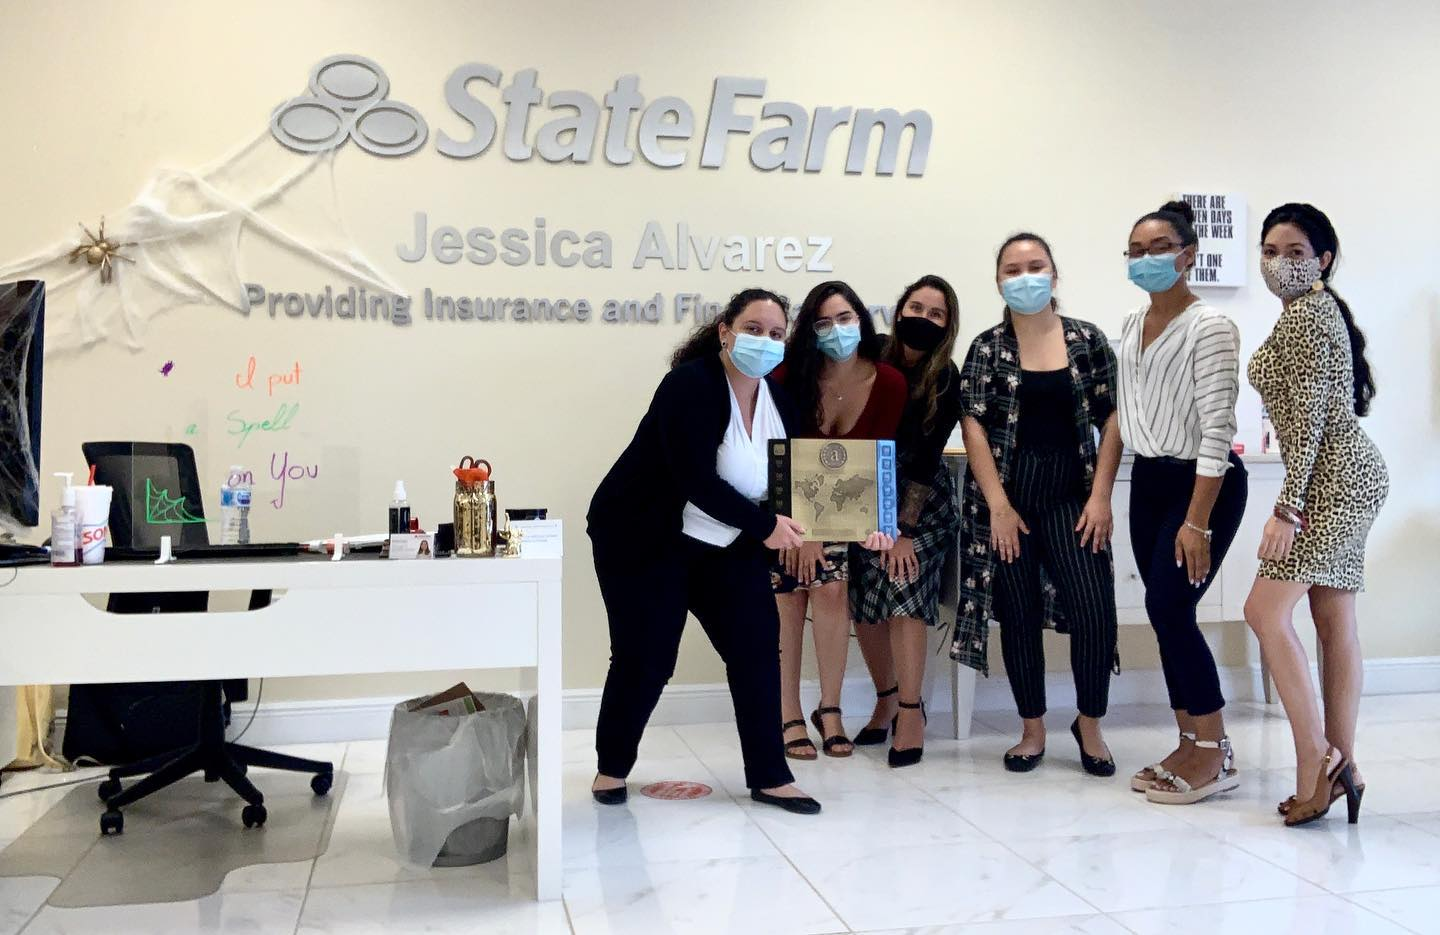 Agent's Assistant - State Farm Agent Team Member (Property and Casualty Insurance Focus)   Jessica Alvarez - State Farm Agent